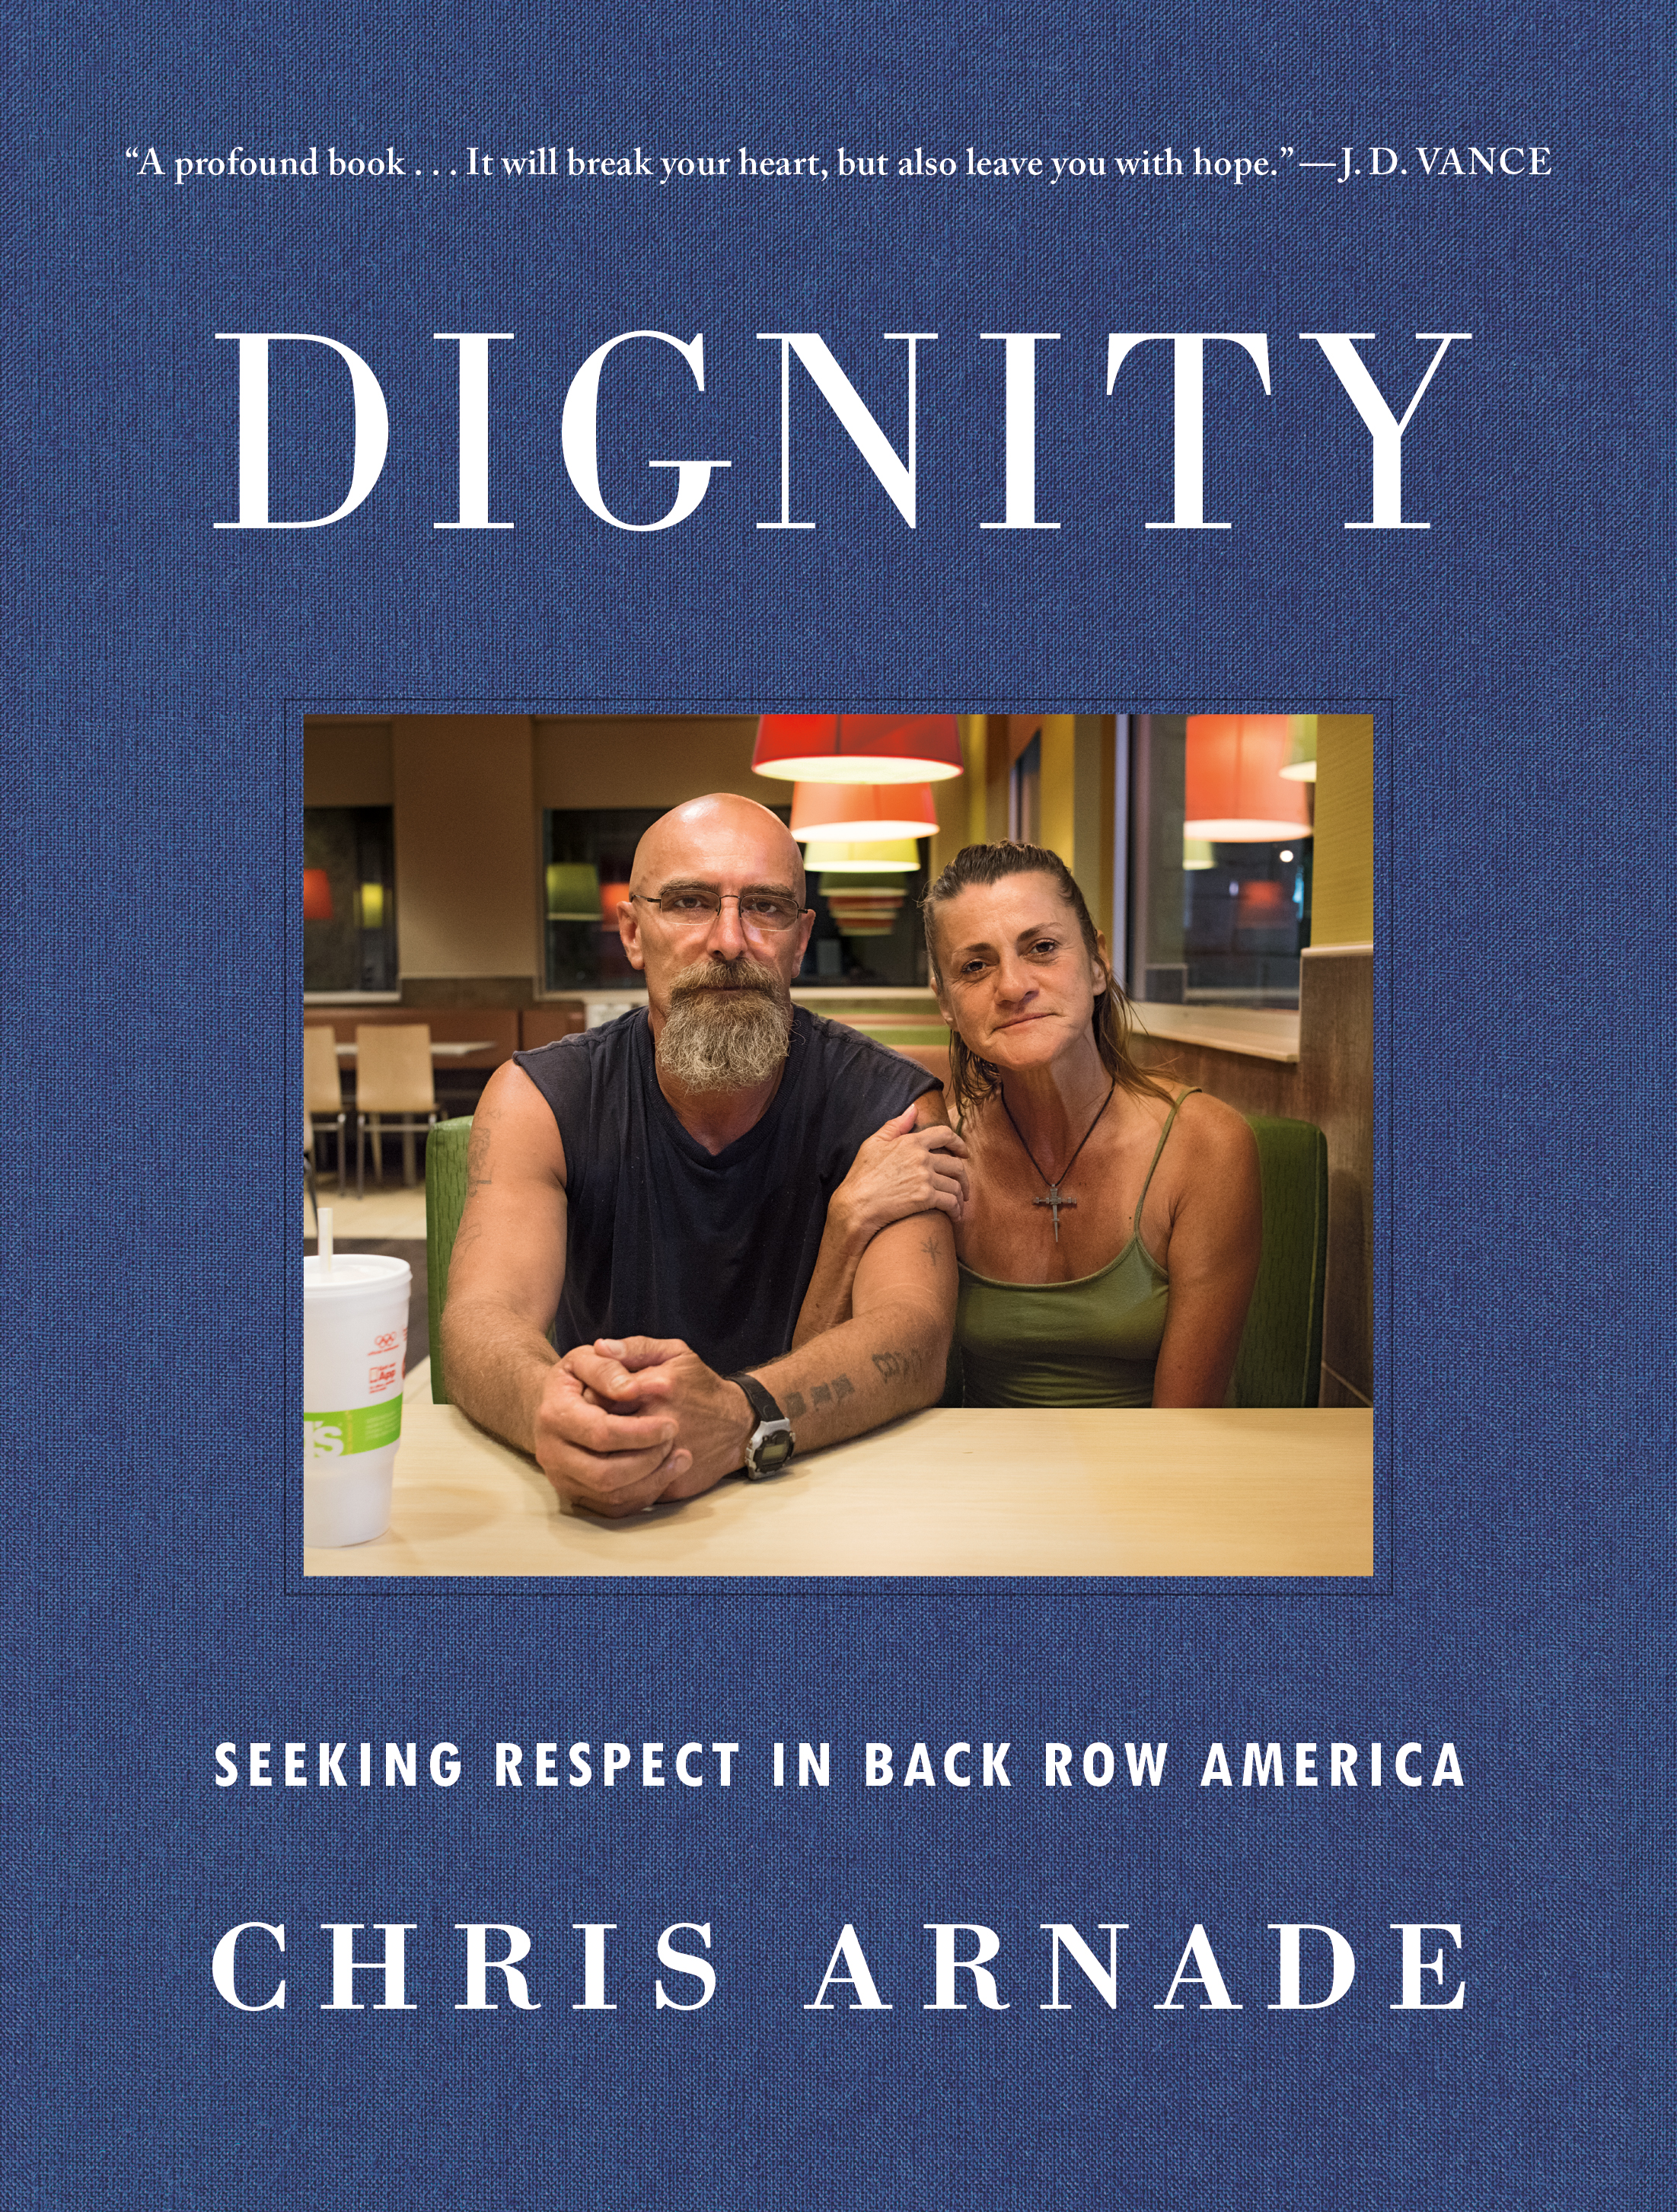 Dignity book cover